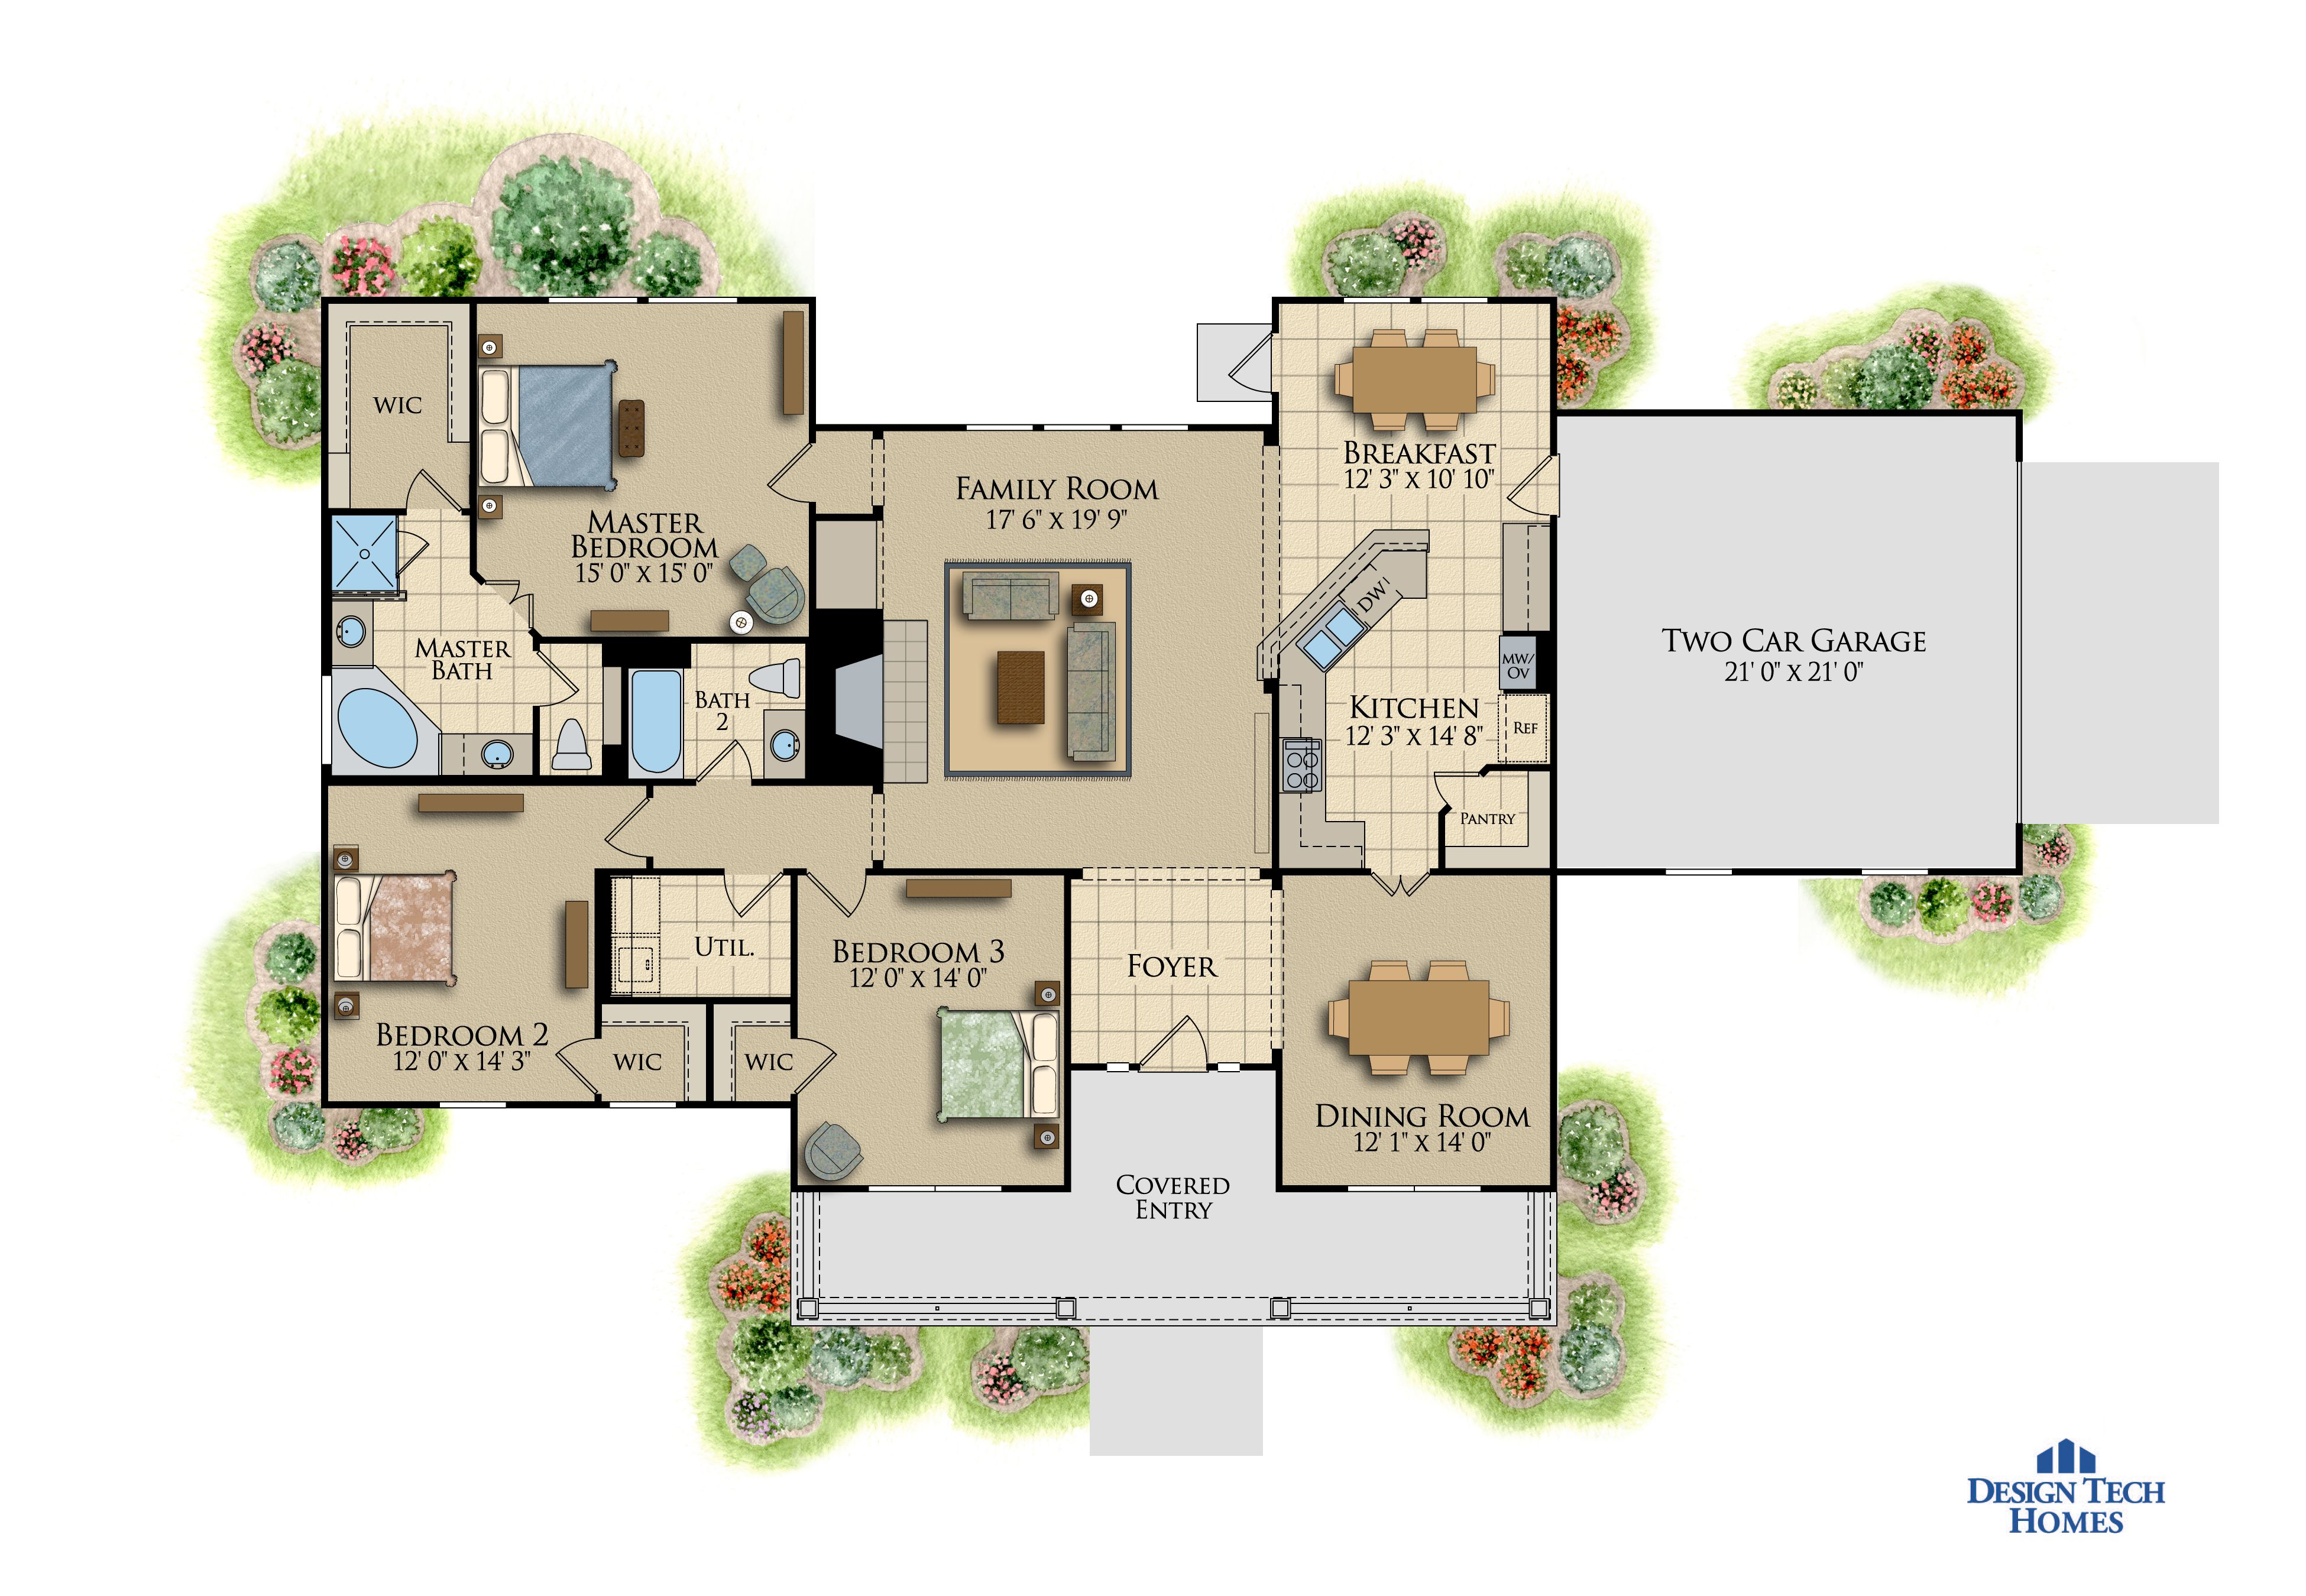 1,999 Sq Ft House Plan - 3 Bed 2 Bath, 1 Story - The Wedgewood ...